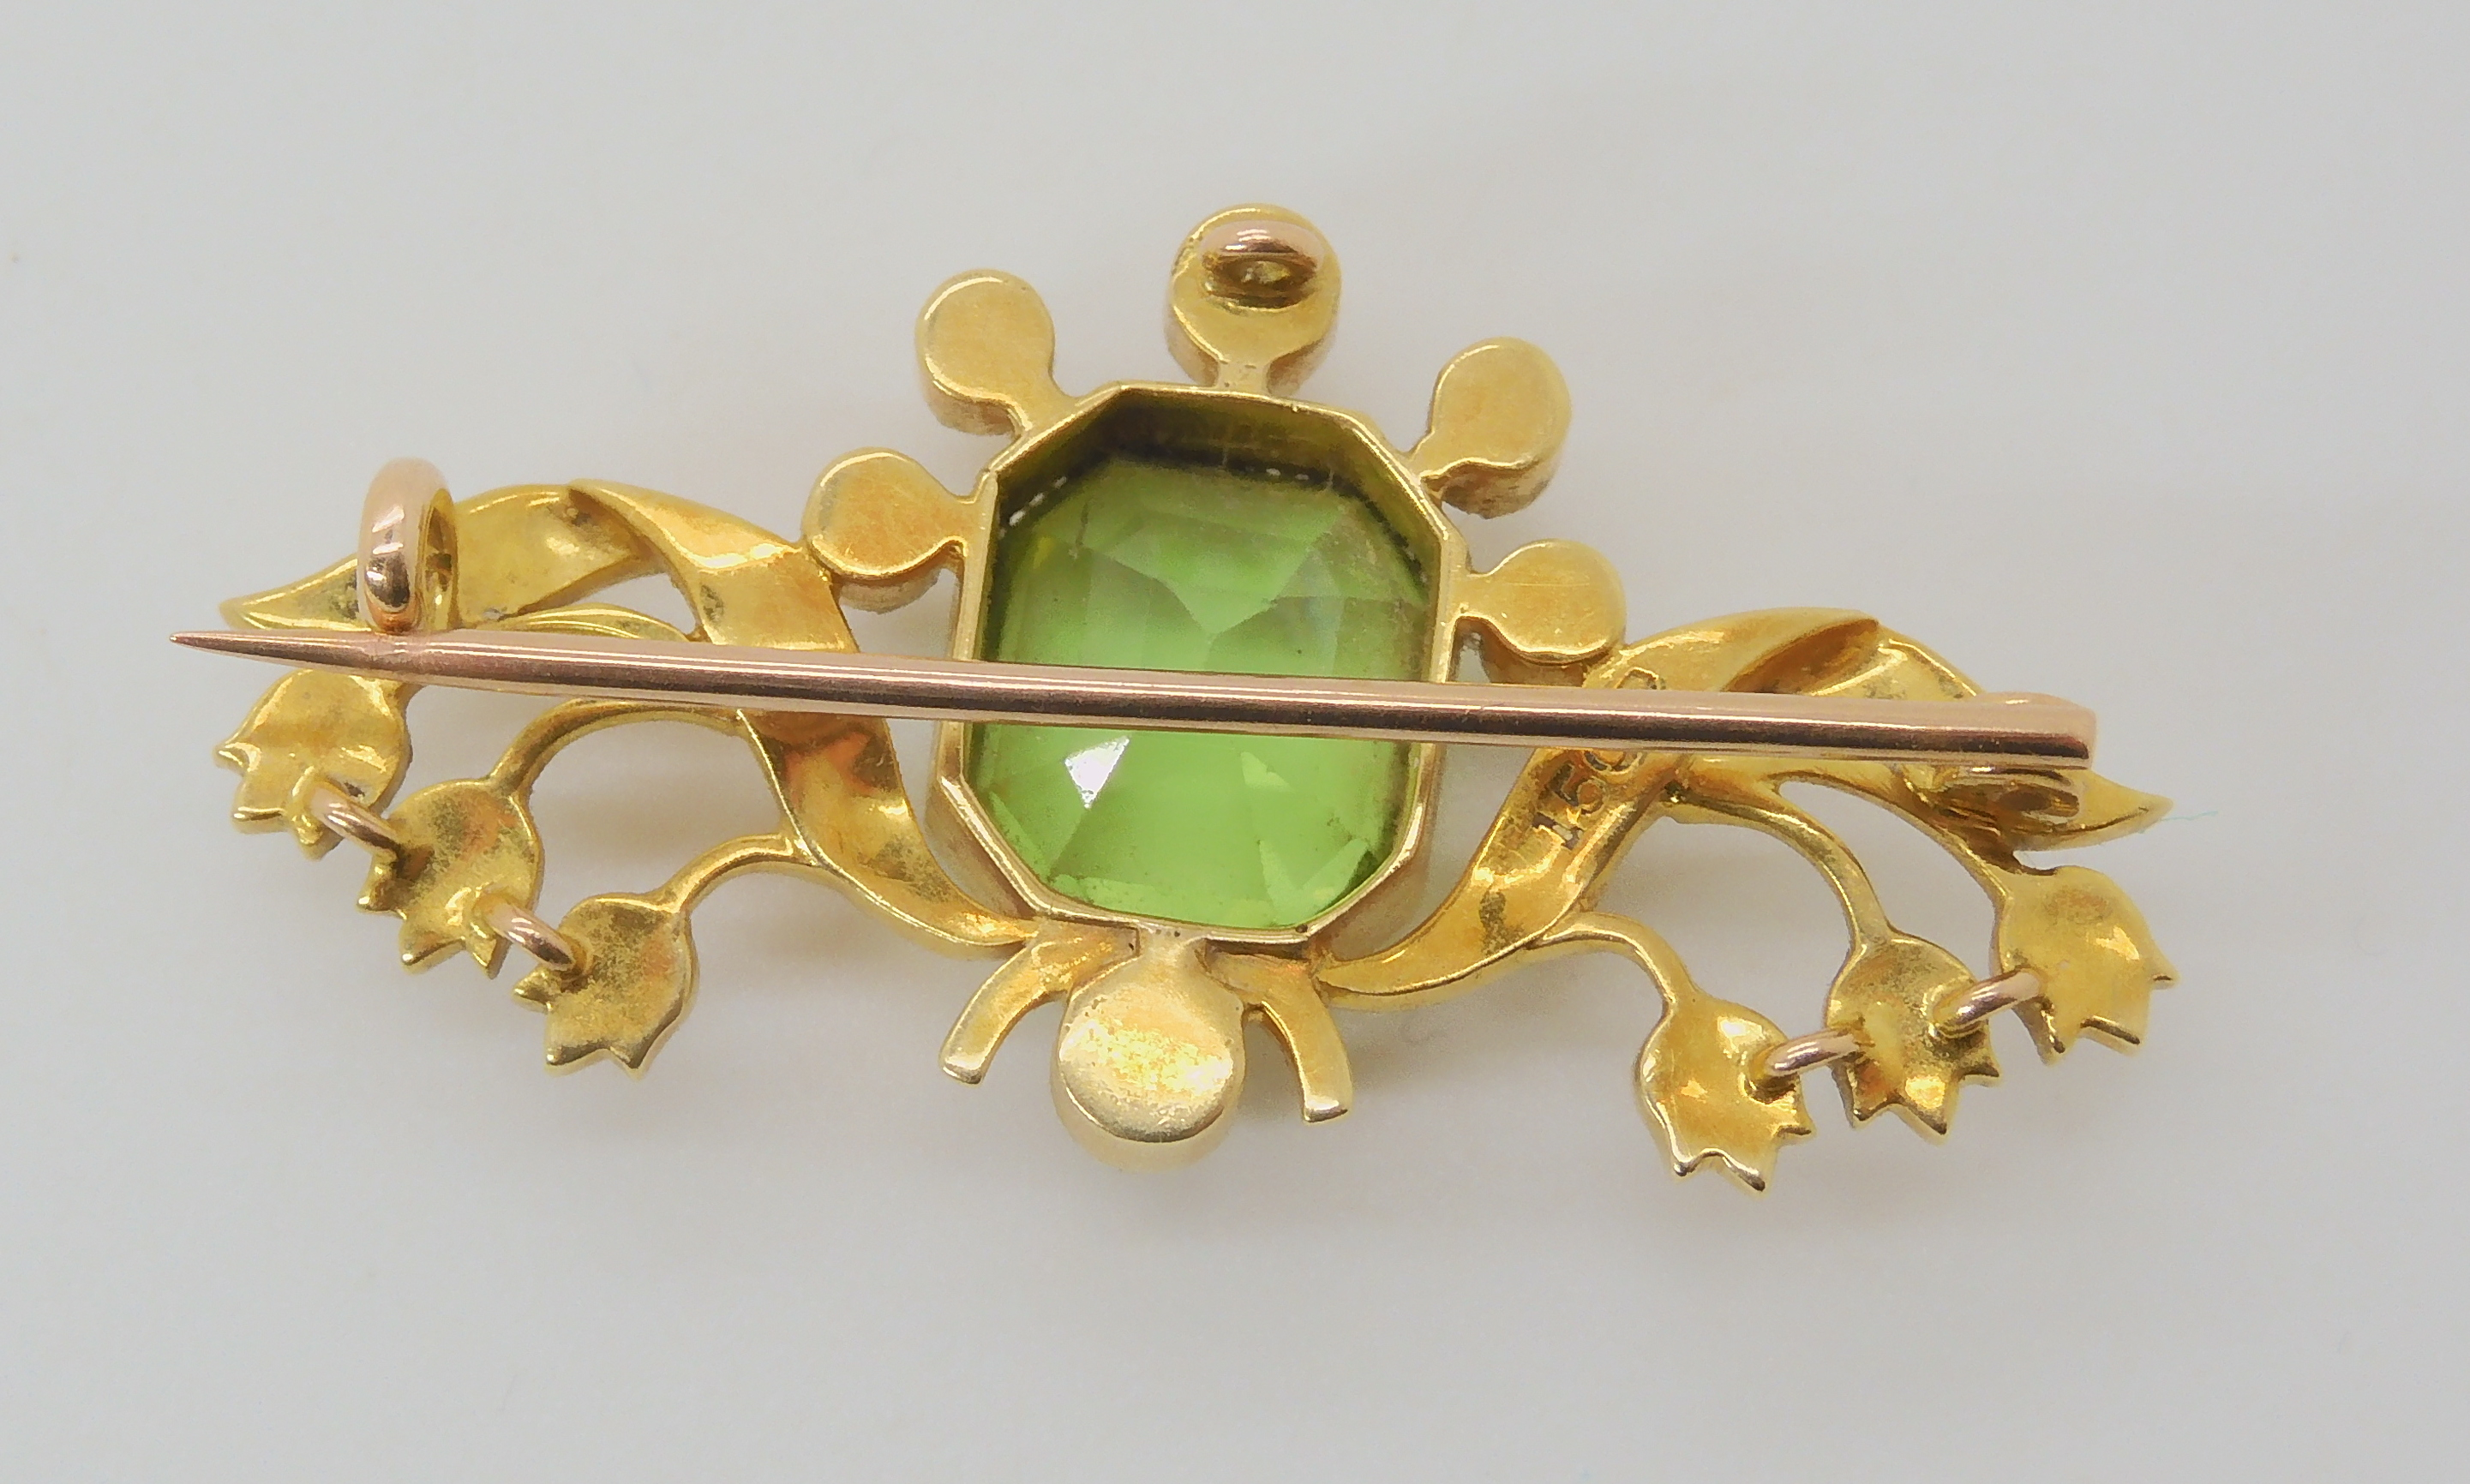 A 15CT GOLD PERIDOT AND PEARL EDWARDIAN BROOCH depicting lily of the valley, the peridot is - Image 2 of 3